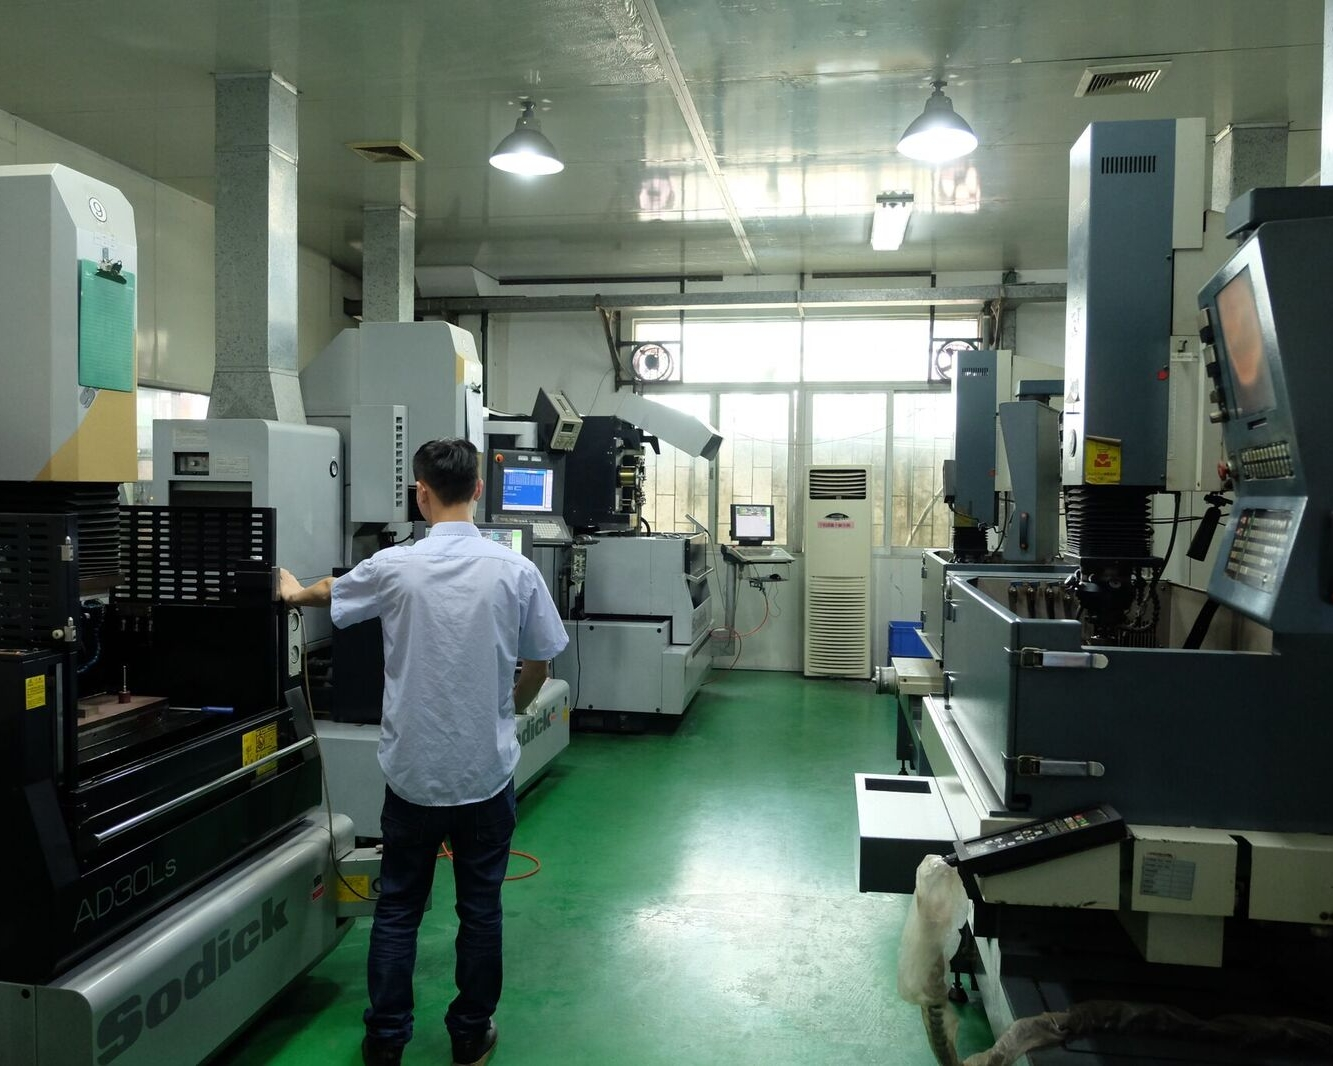 electronic contract manufacturing equipment room